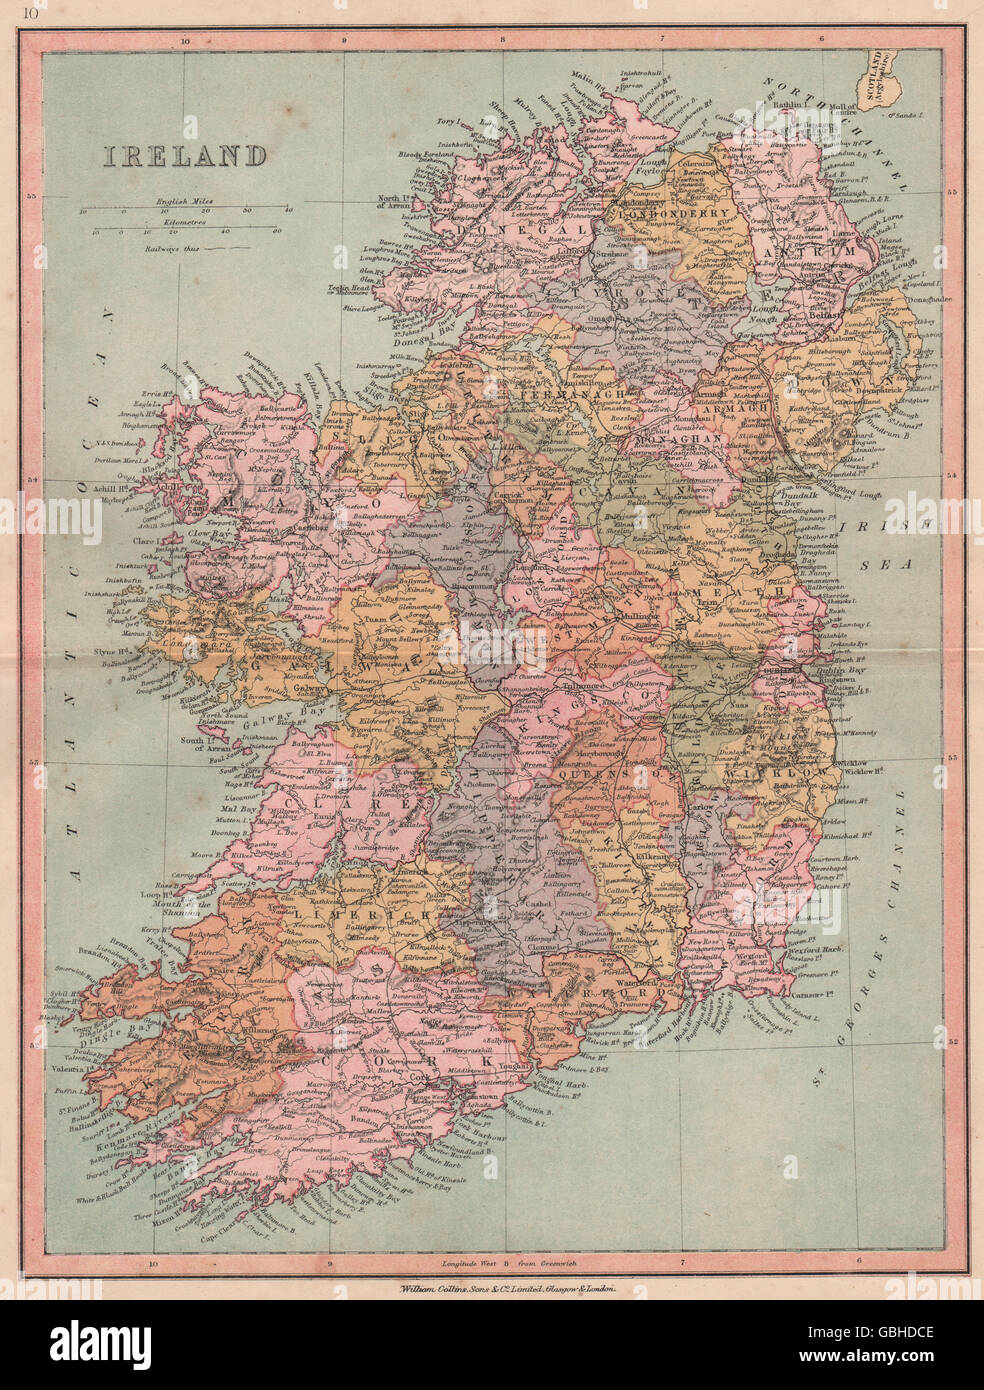 IRELAND  Showing counties   railways  COLLINS  1880 antique map     IRELAND  Showing counties   railways  COLLINS  1880 antique map